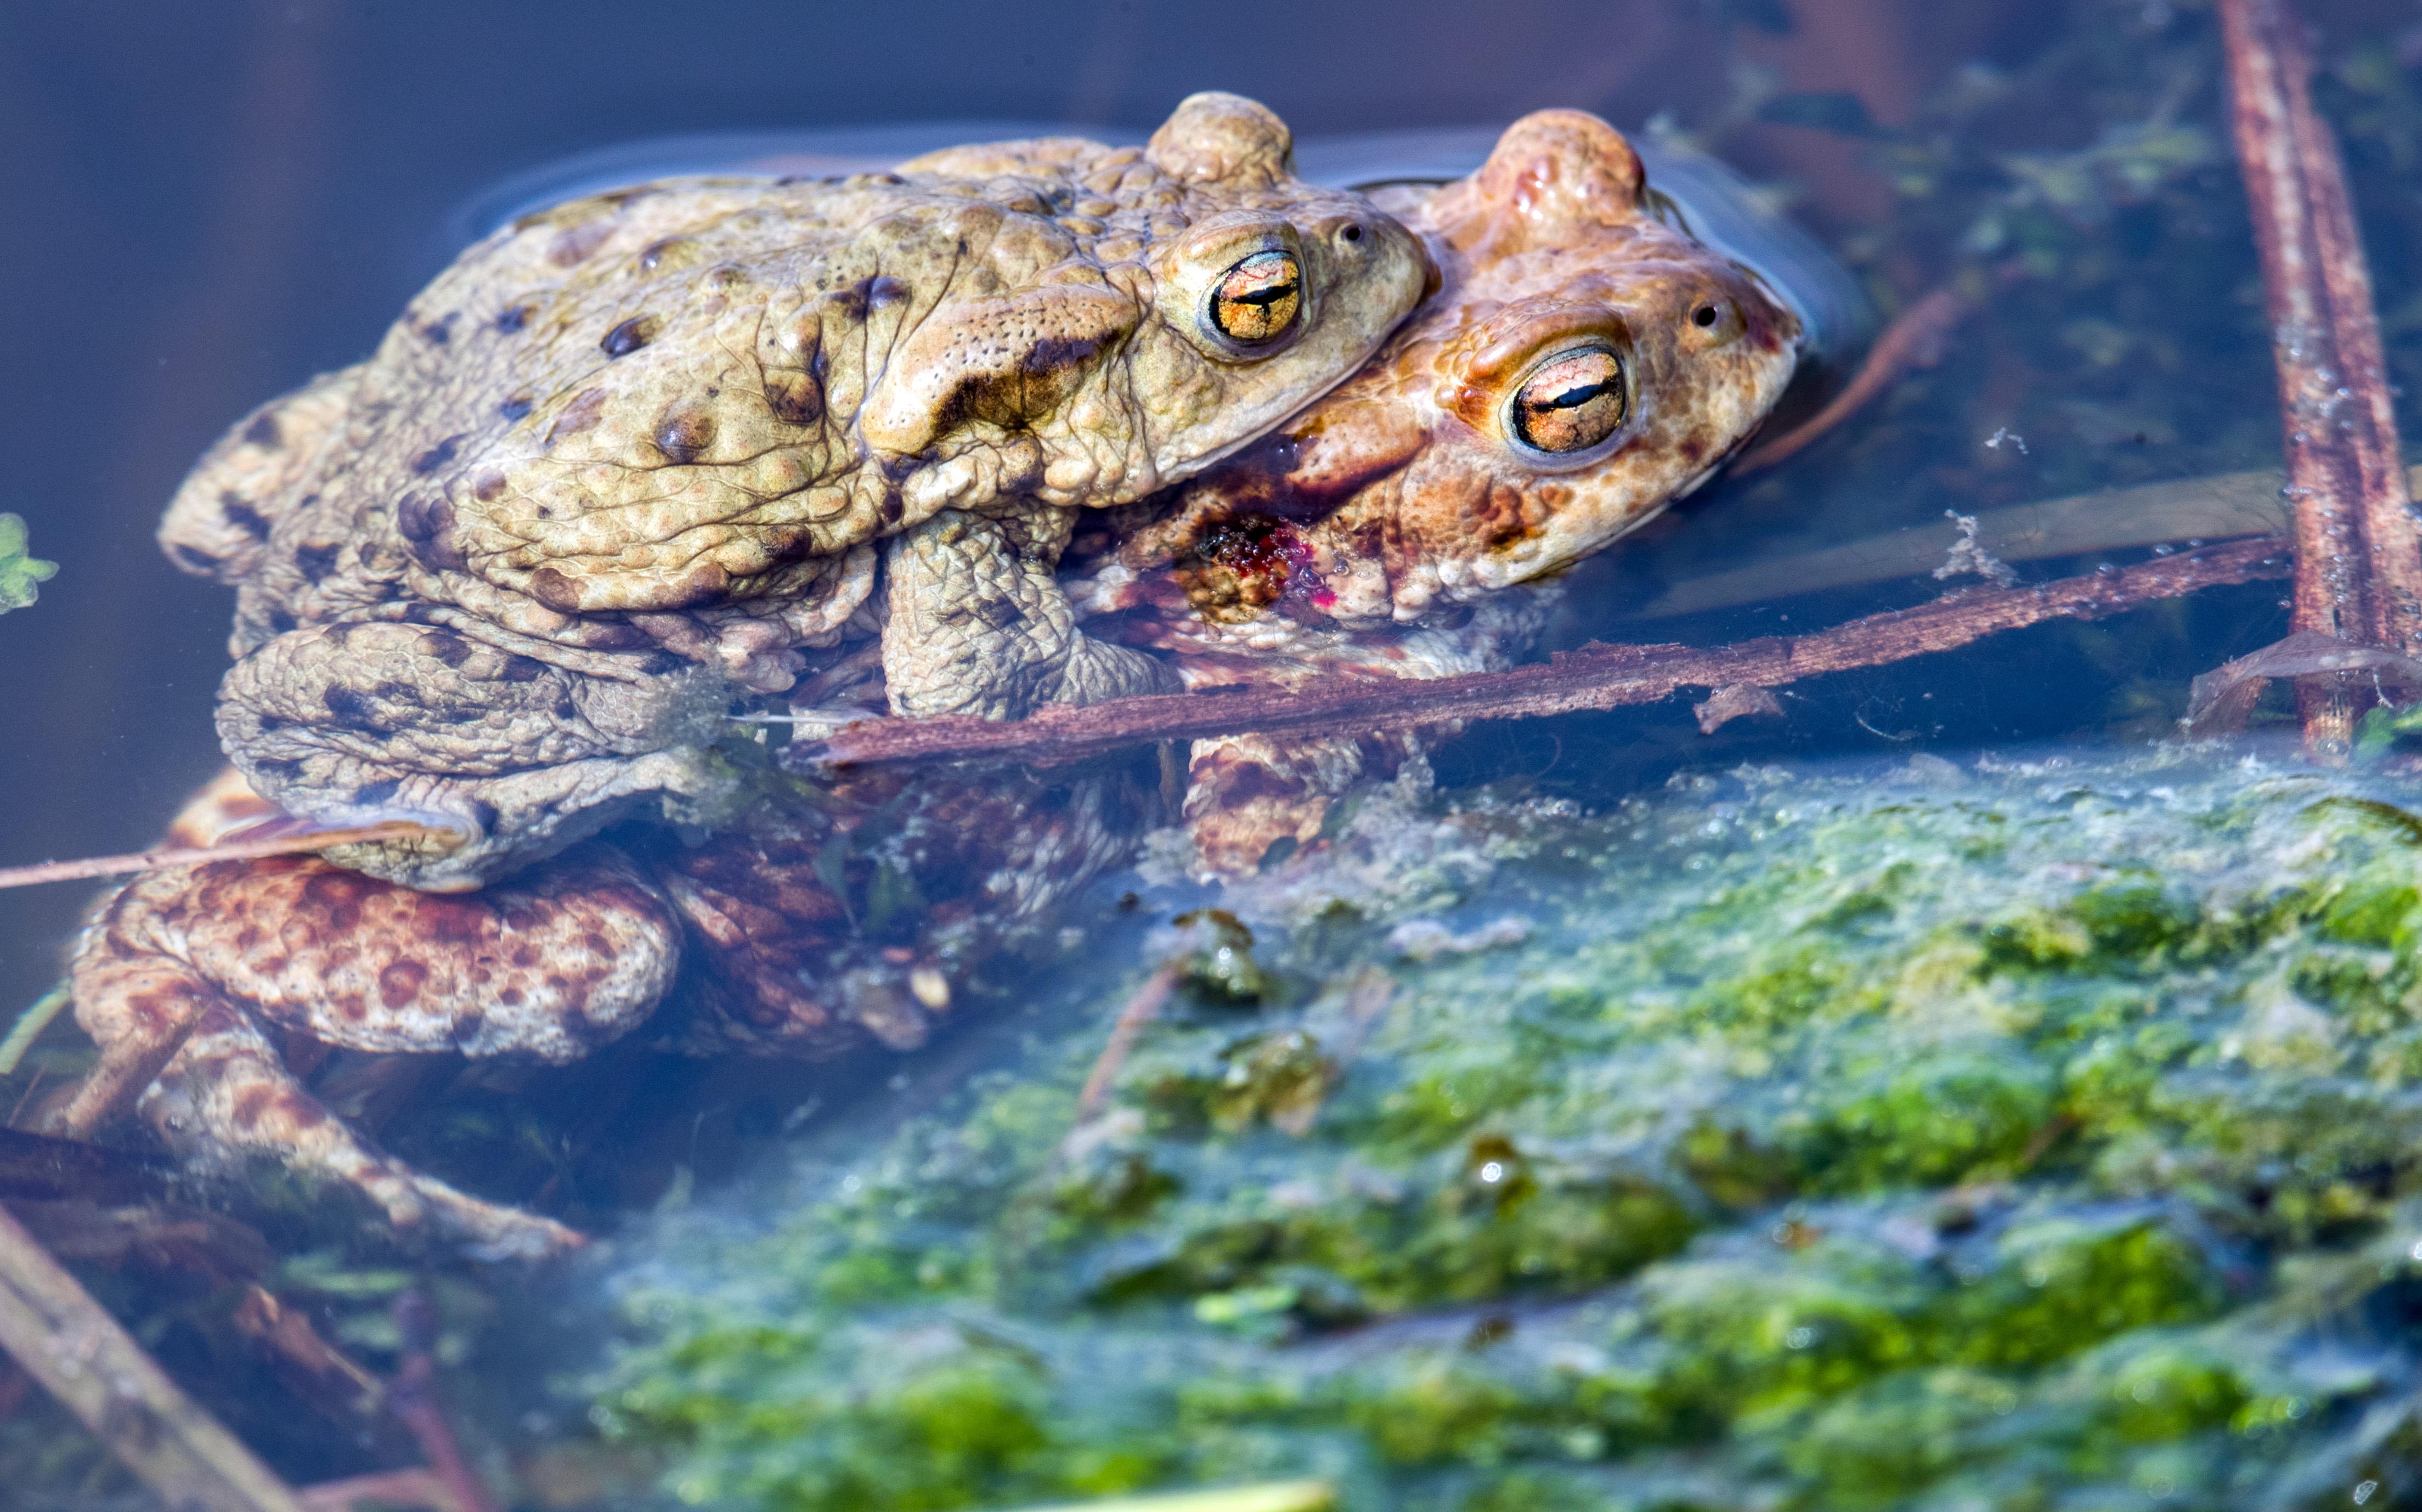 Common toads mate in a pond.